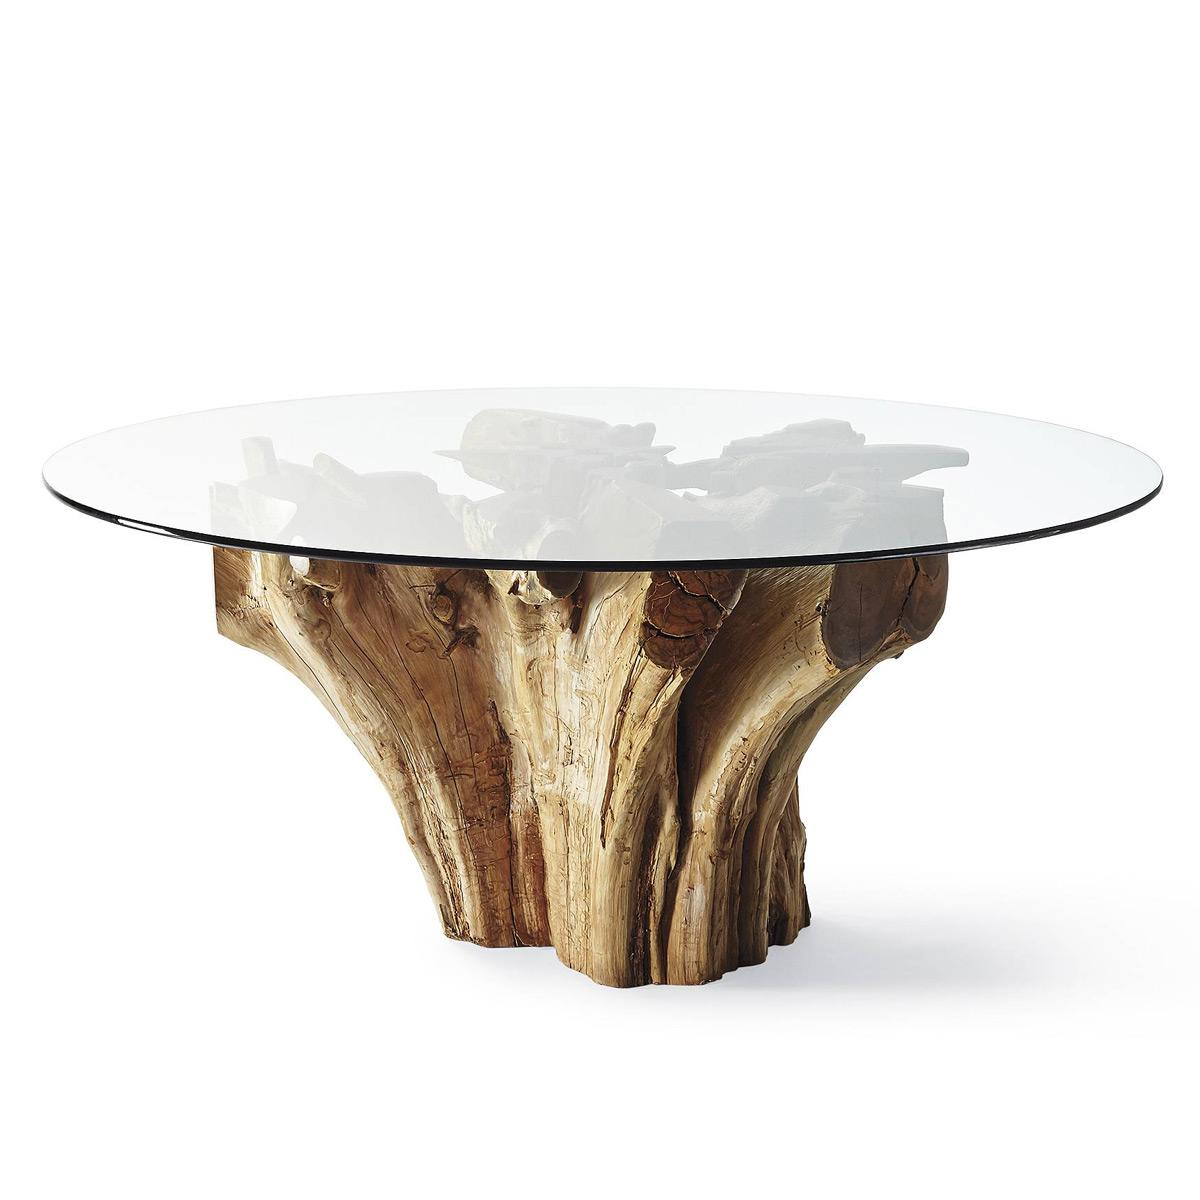 Amazing Teak Wood Dining Table Ideas And Design InteriorSherpa - Teak root dining table base